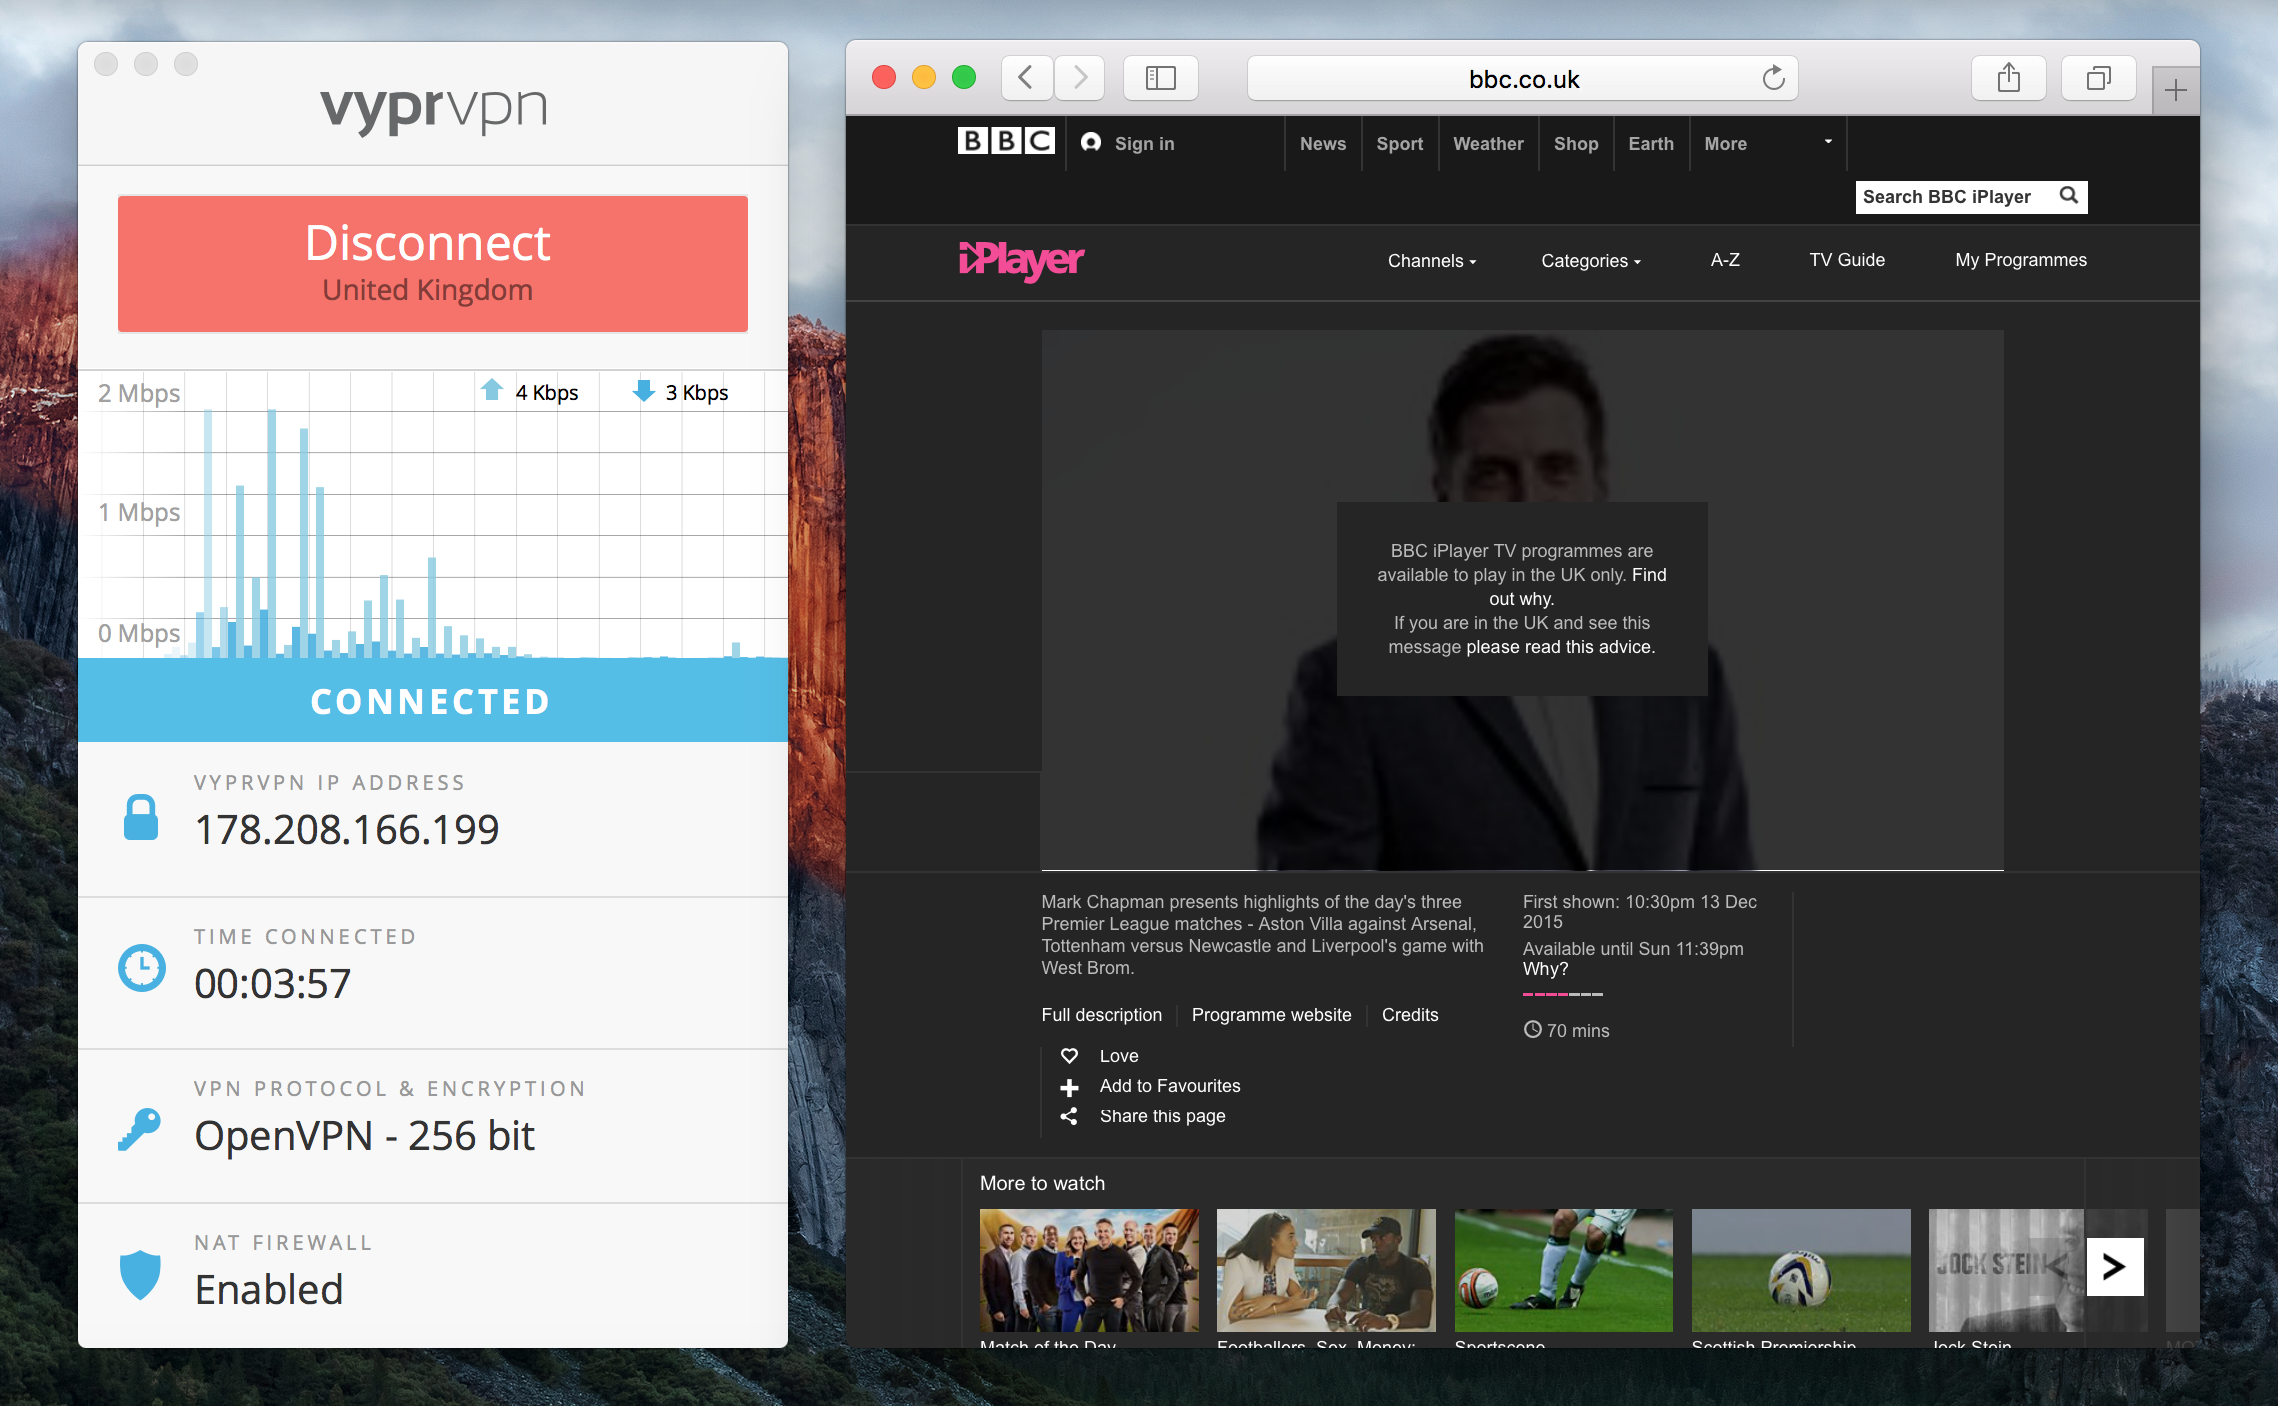 BBC iPlayer didn't work with VyprVPN when in the US, even when connected with Chameleon